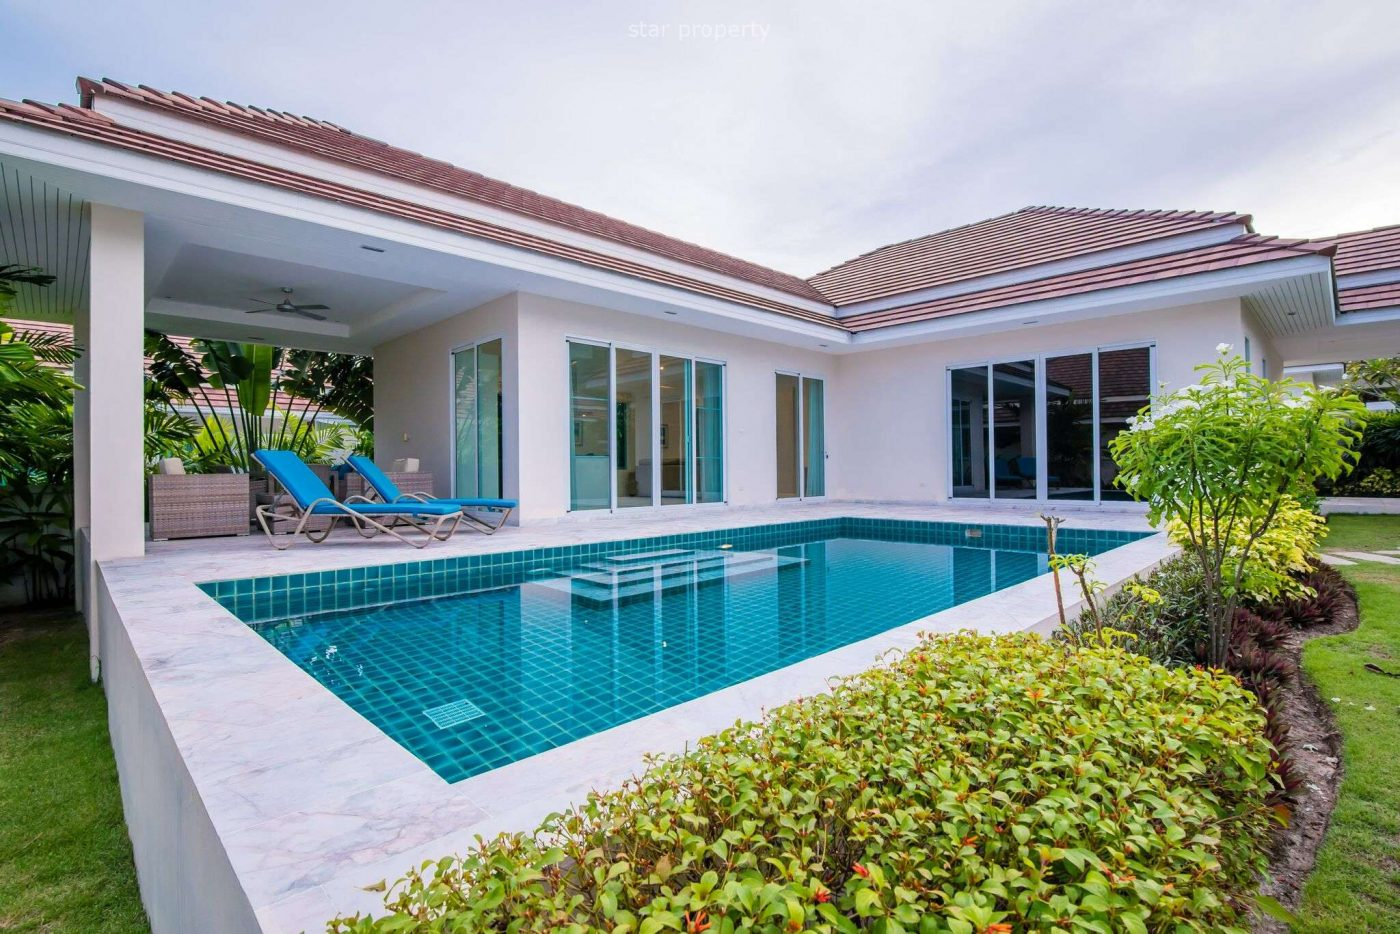 3 Bedroom Pool Villa for Sale at Woodlands Soi 88 Hua Hin at Hua Hin District, Prachuap Khiri Khan, Thailand